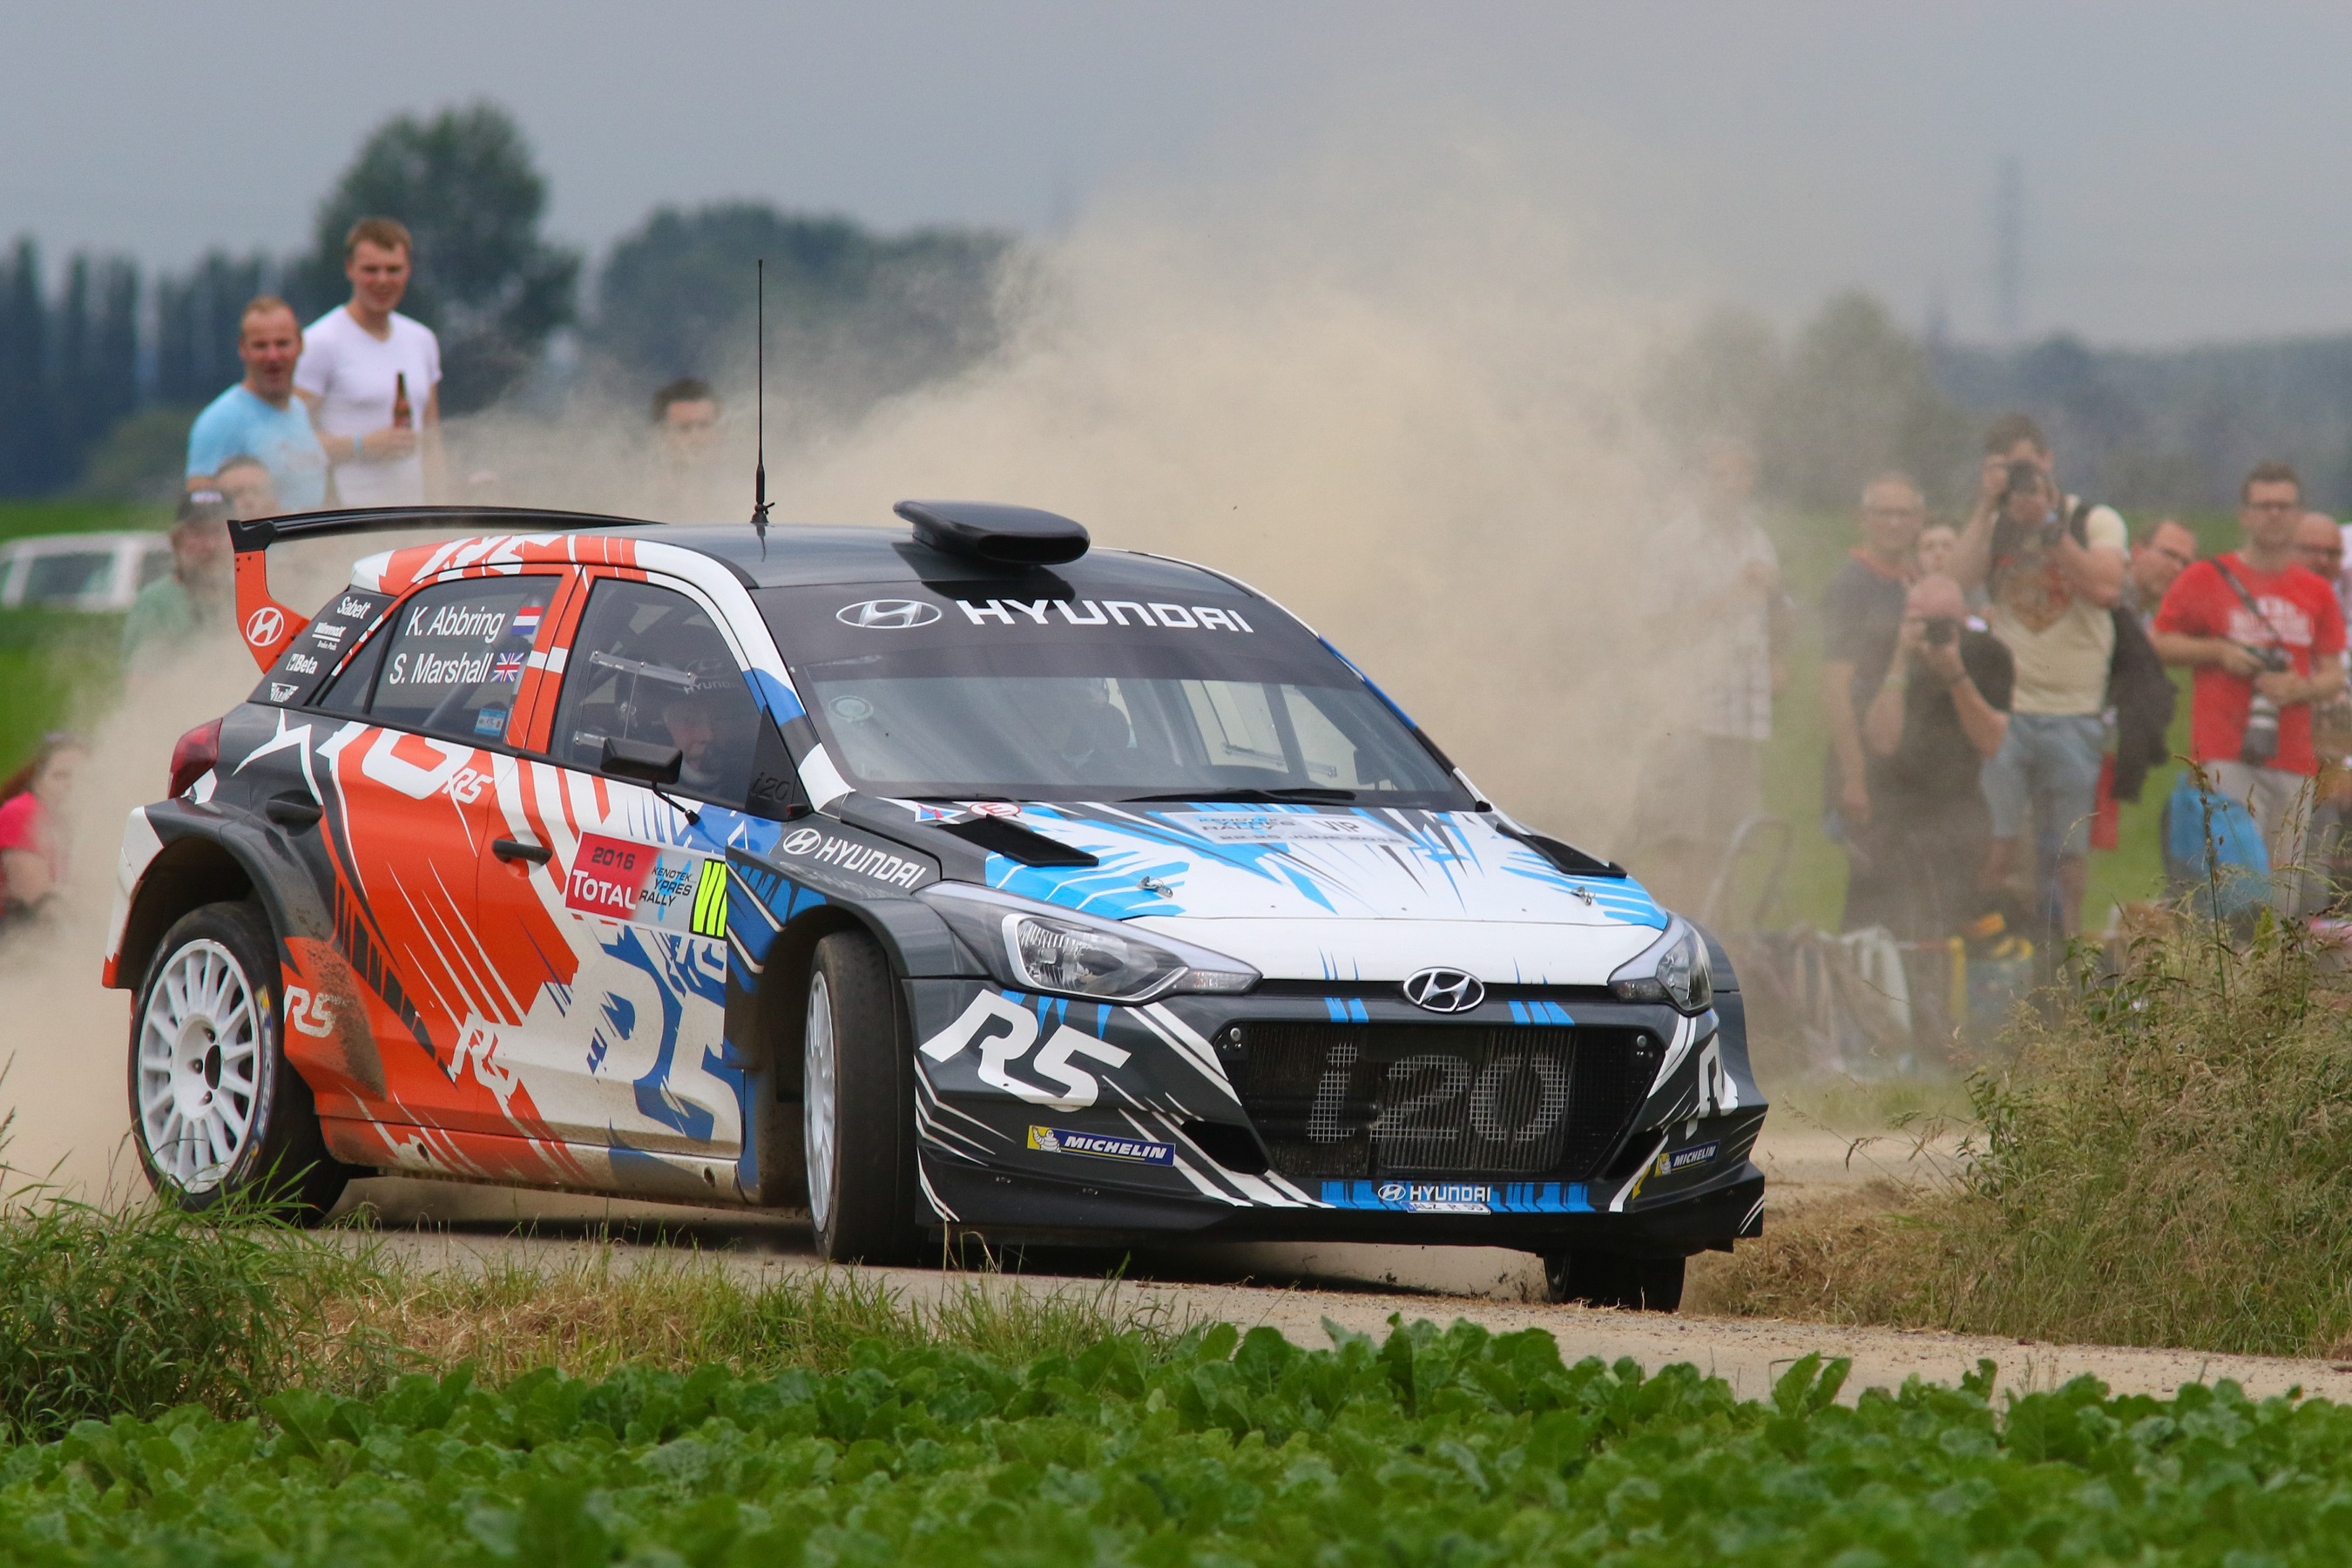 Hyundai Motorsport's New Generation i20 R5 grabs attention at the Ypres Rally